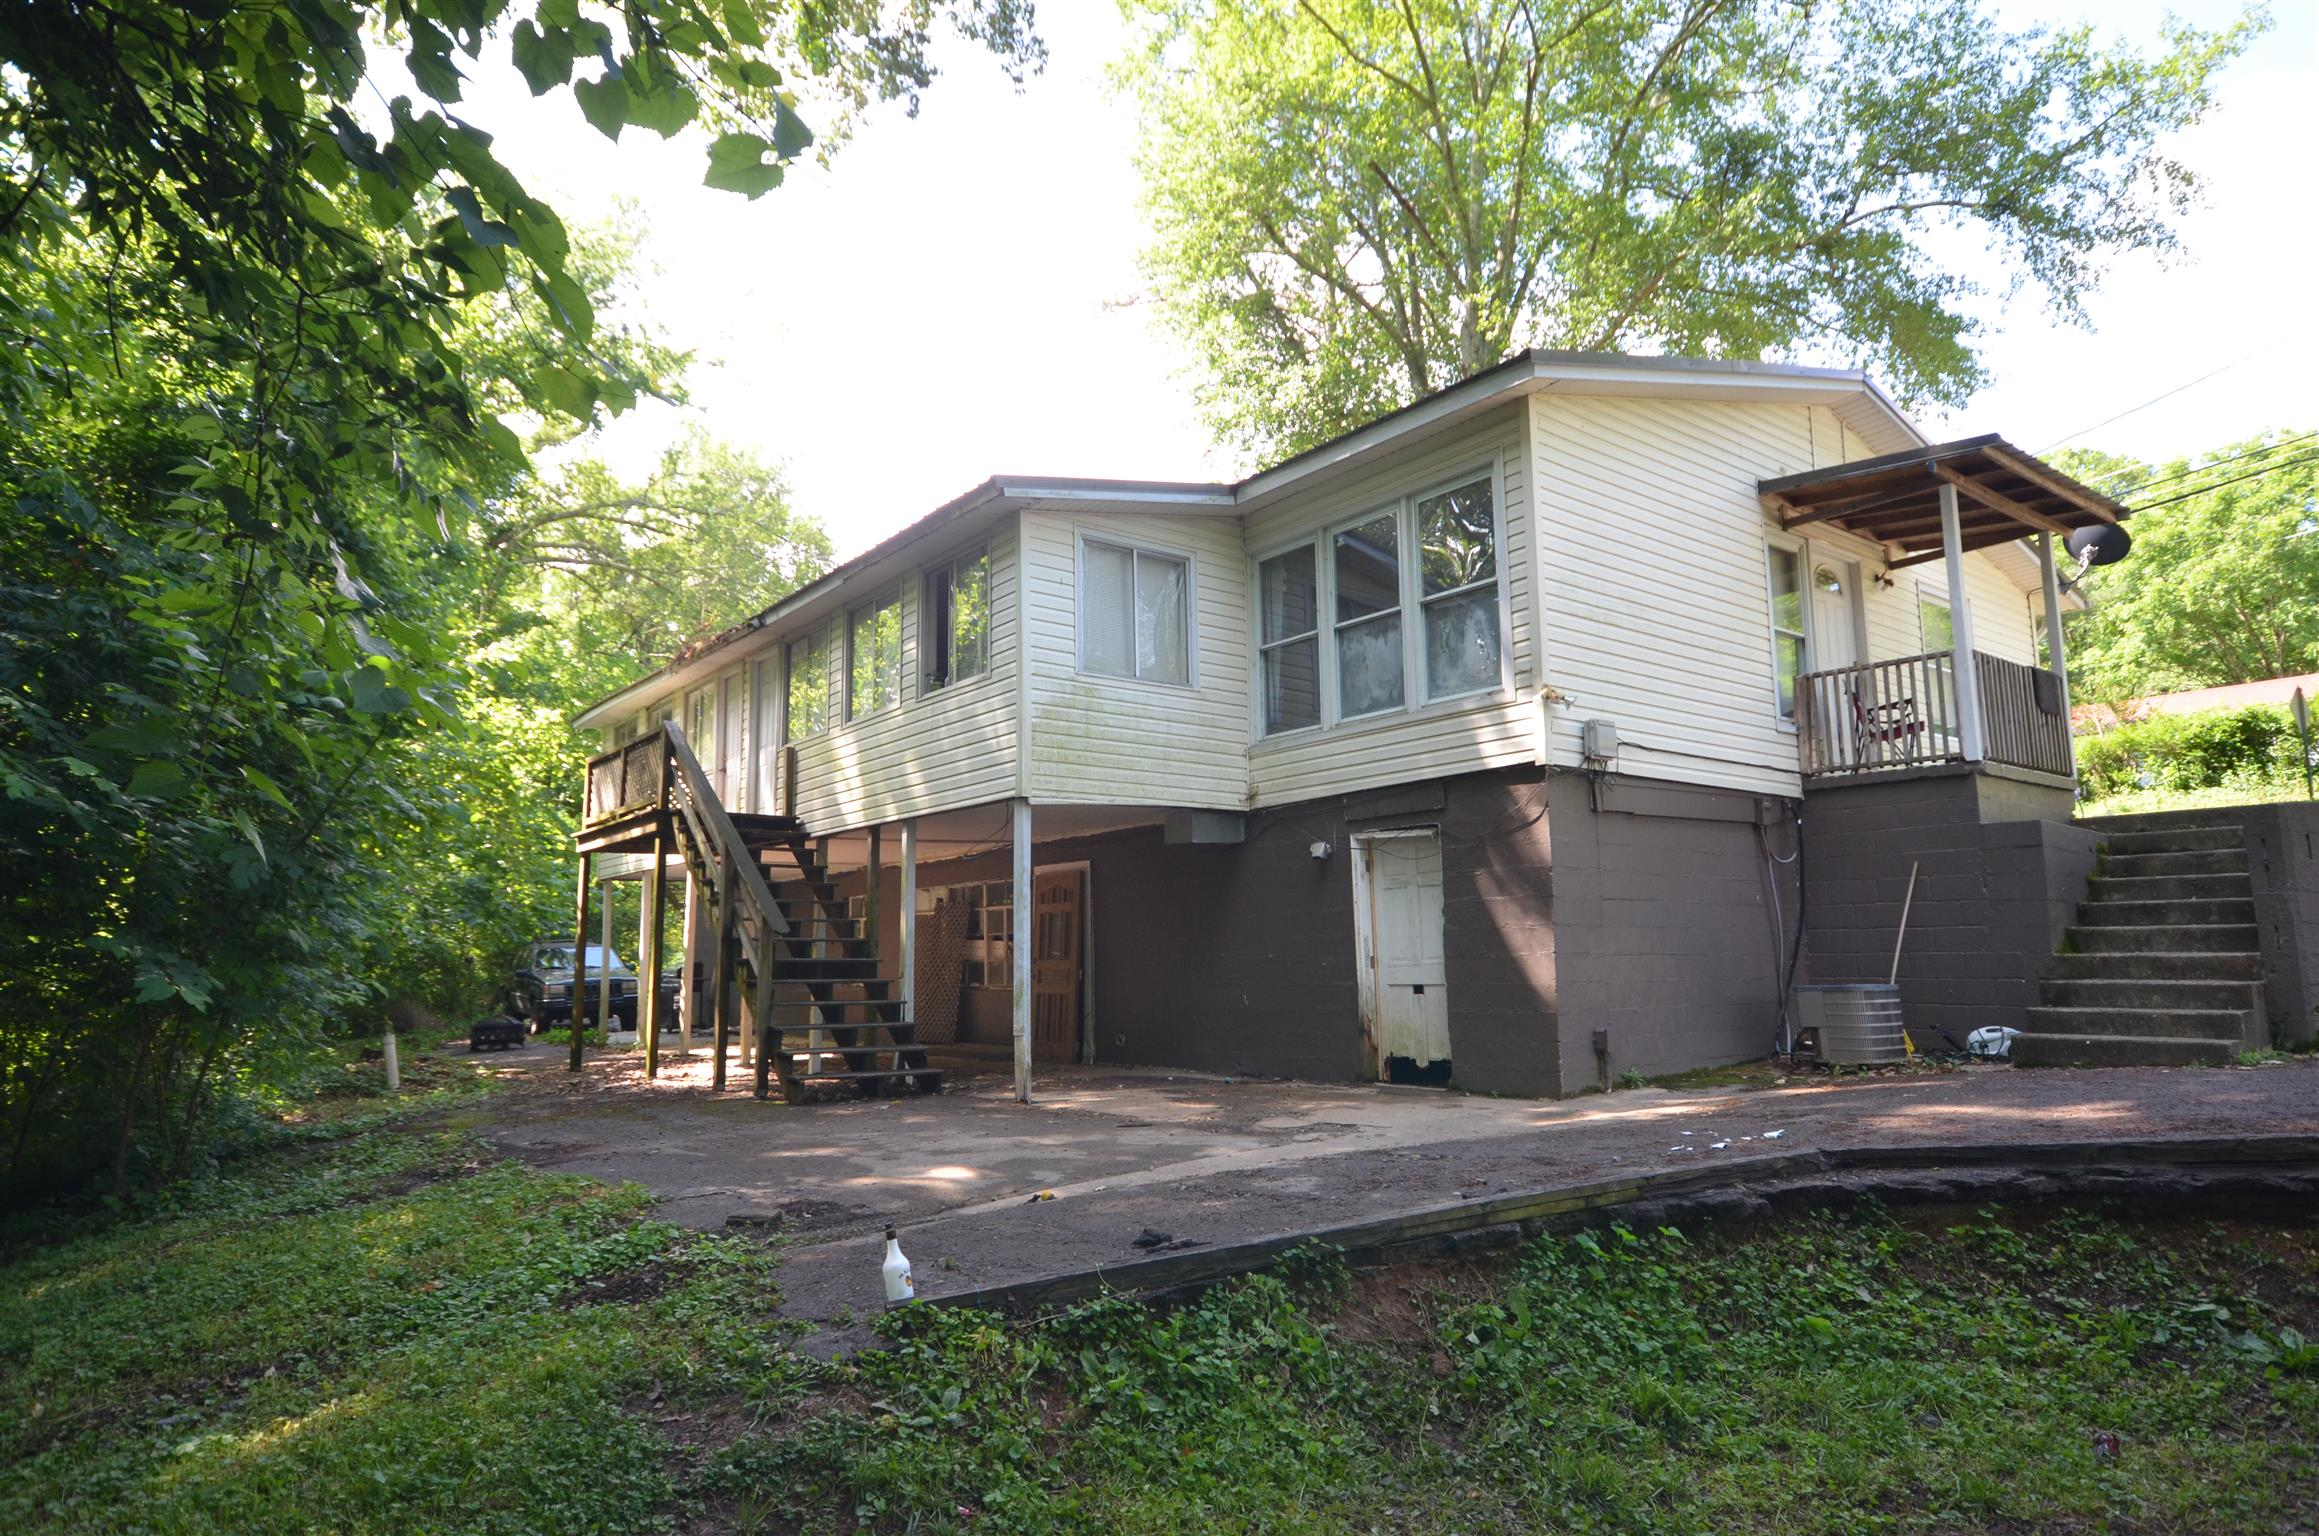 252 Sweetens Cove Rd Property Photo - South Pittsburg, TN real estate listing